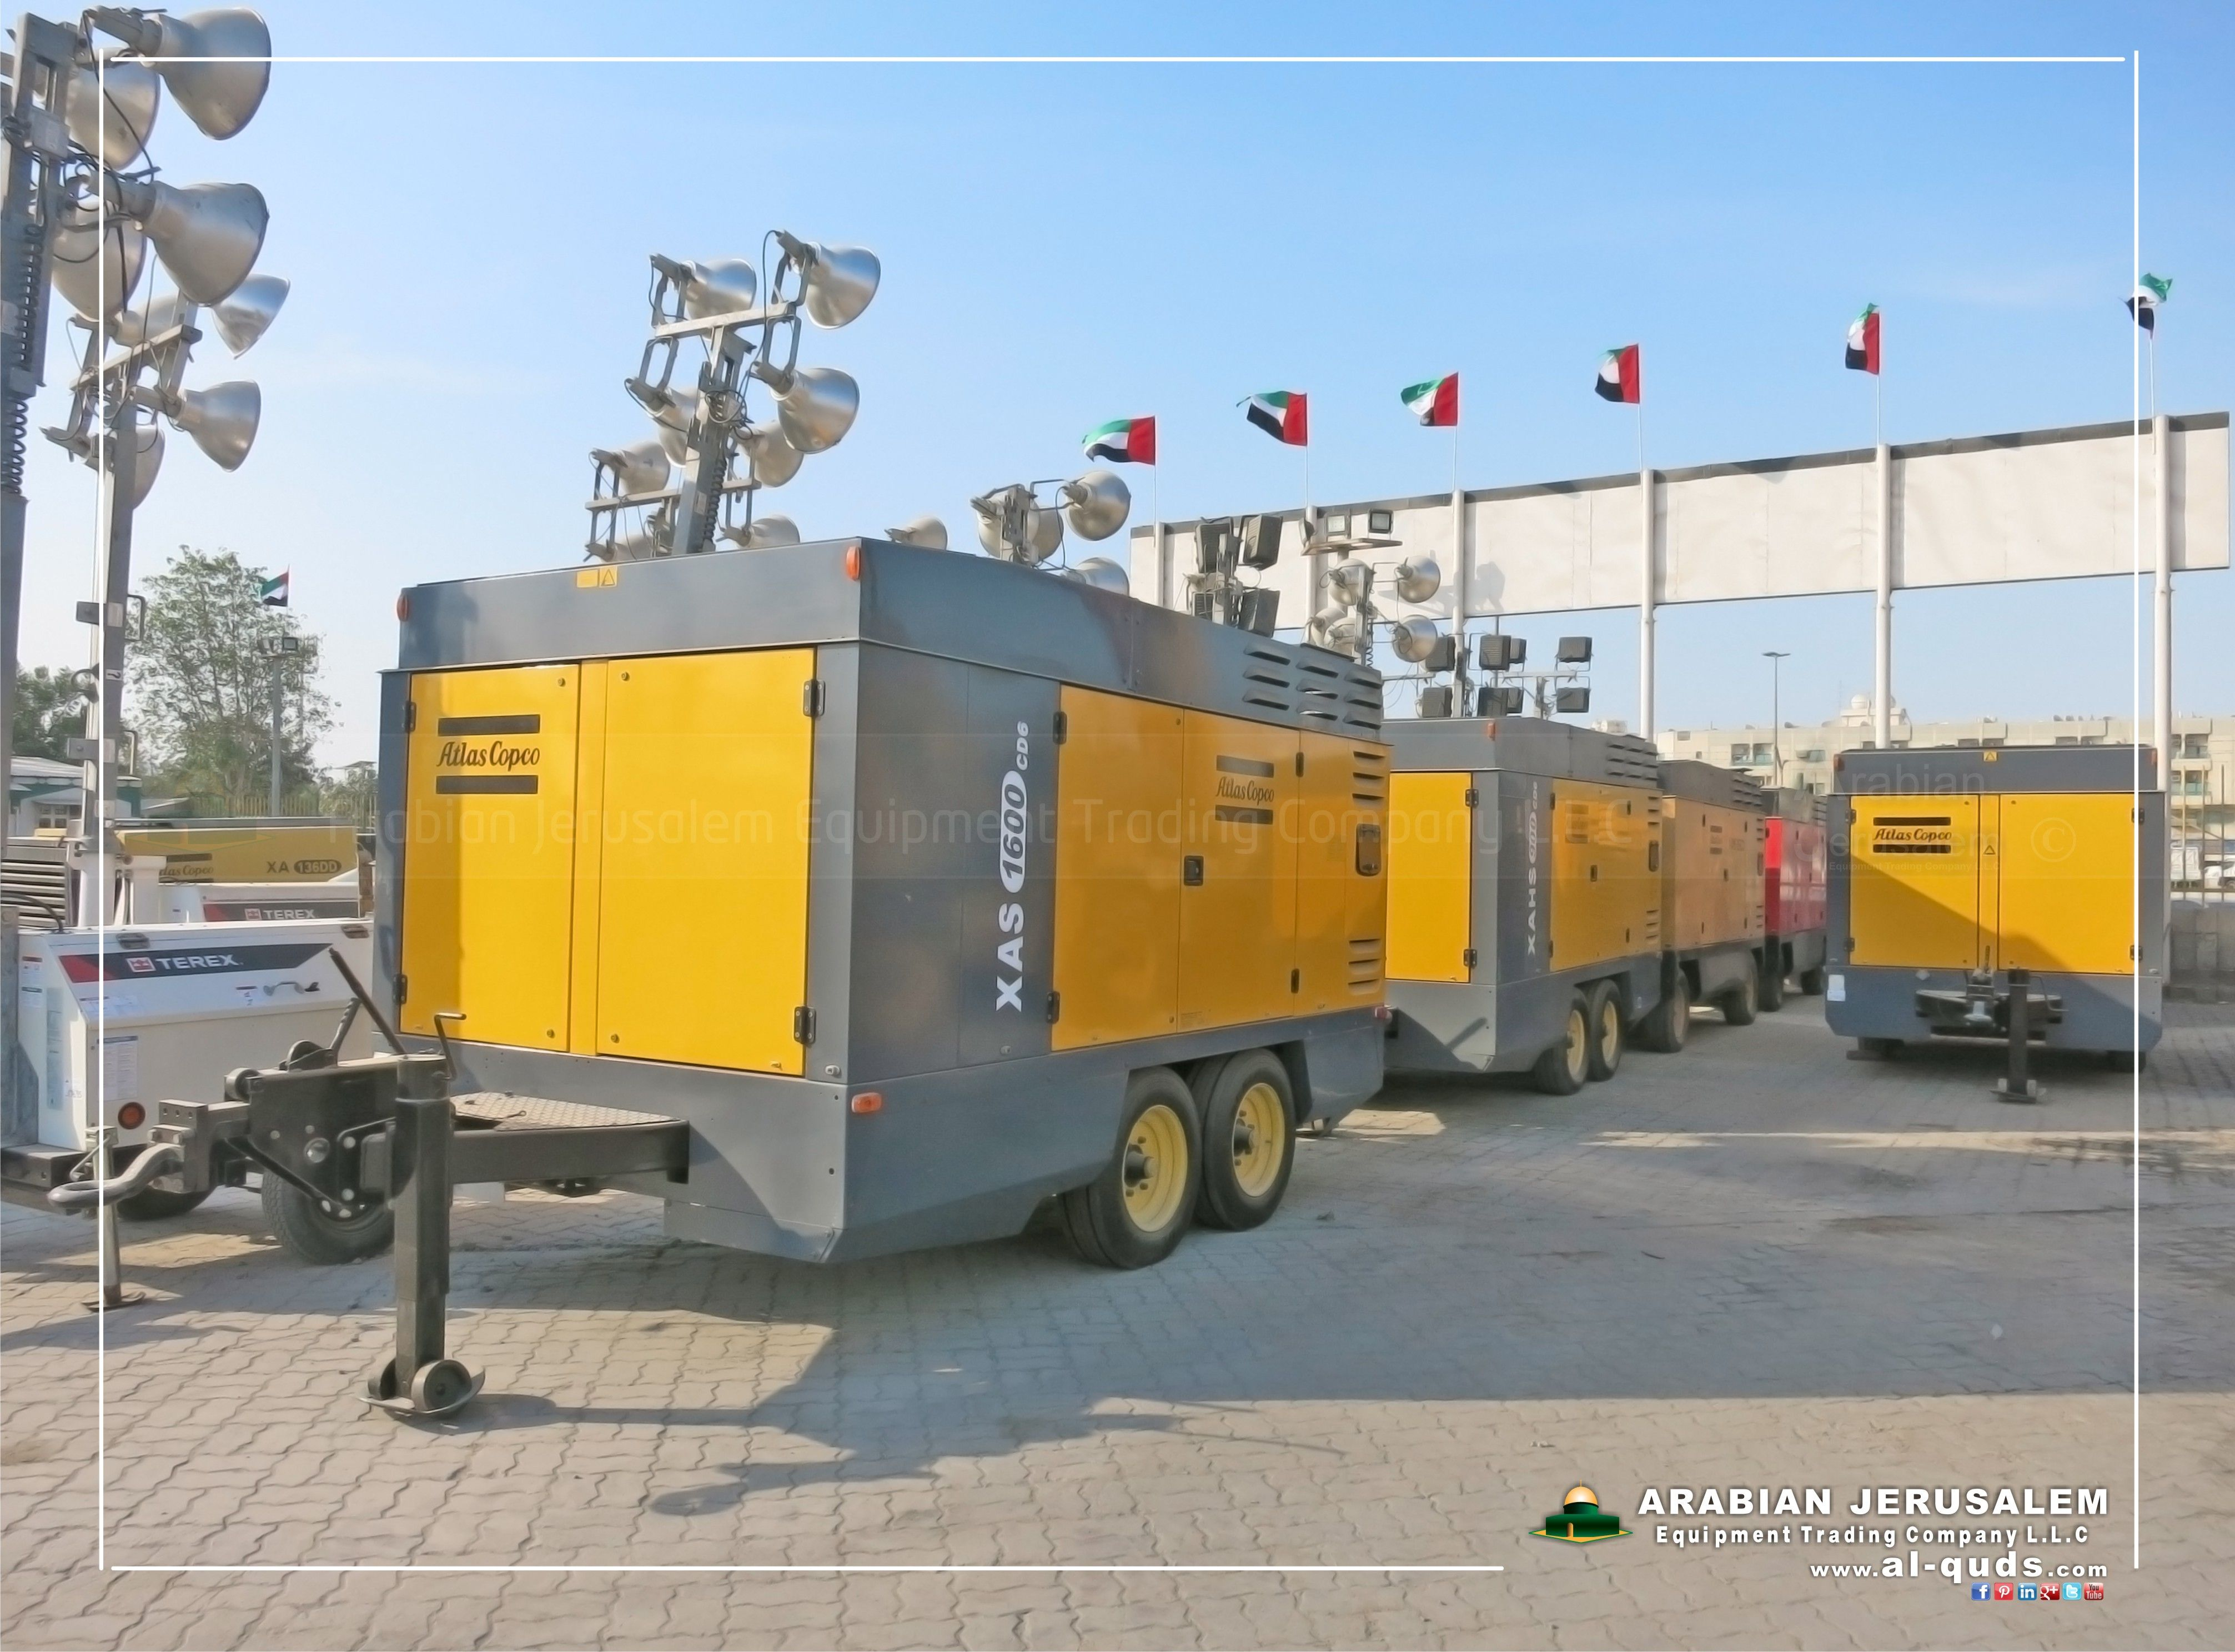 Are you looking for a durable and reliable air compressor